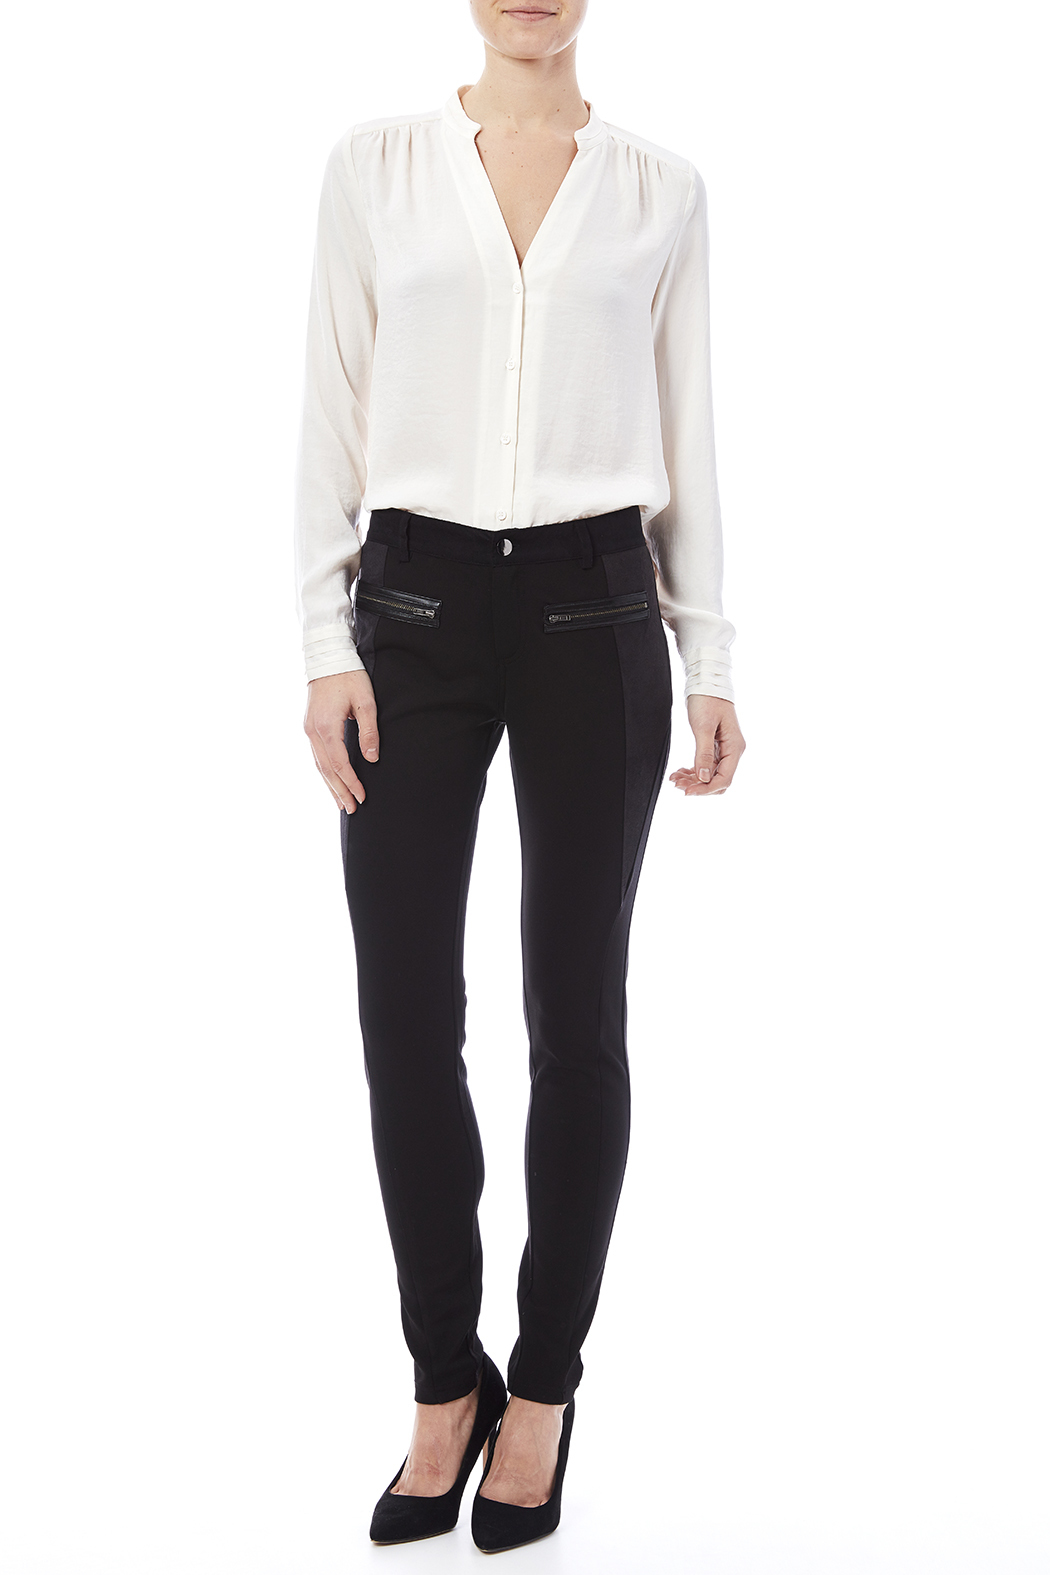 Miss Me Lace Up Detail Skinny Pants - Front Full Image